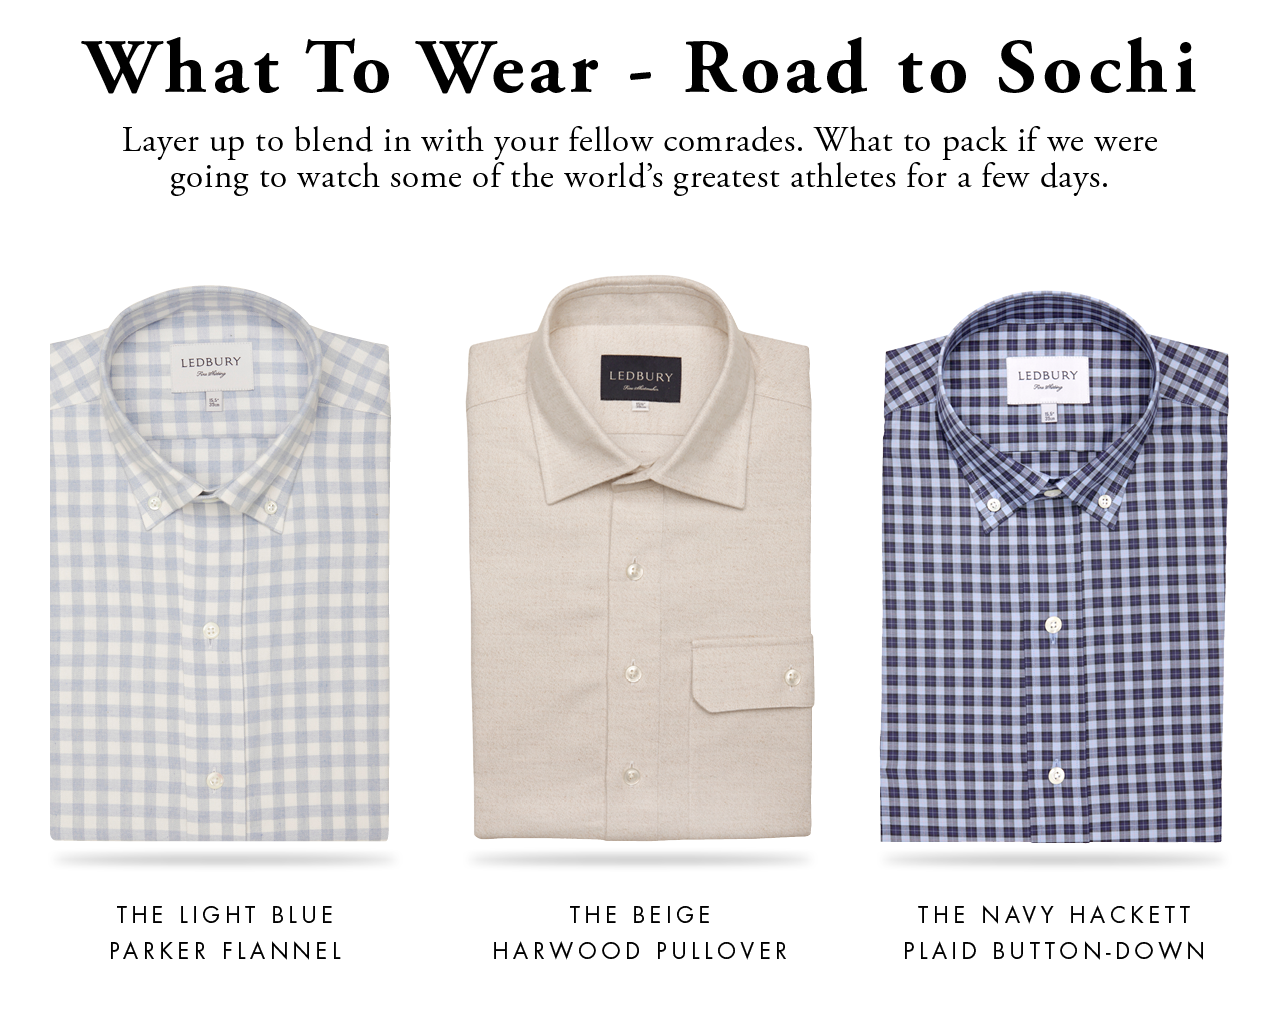 What to Wear - Road To Sochi